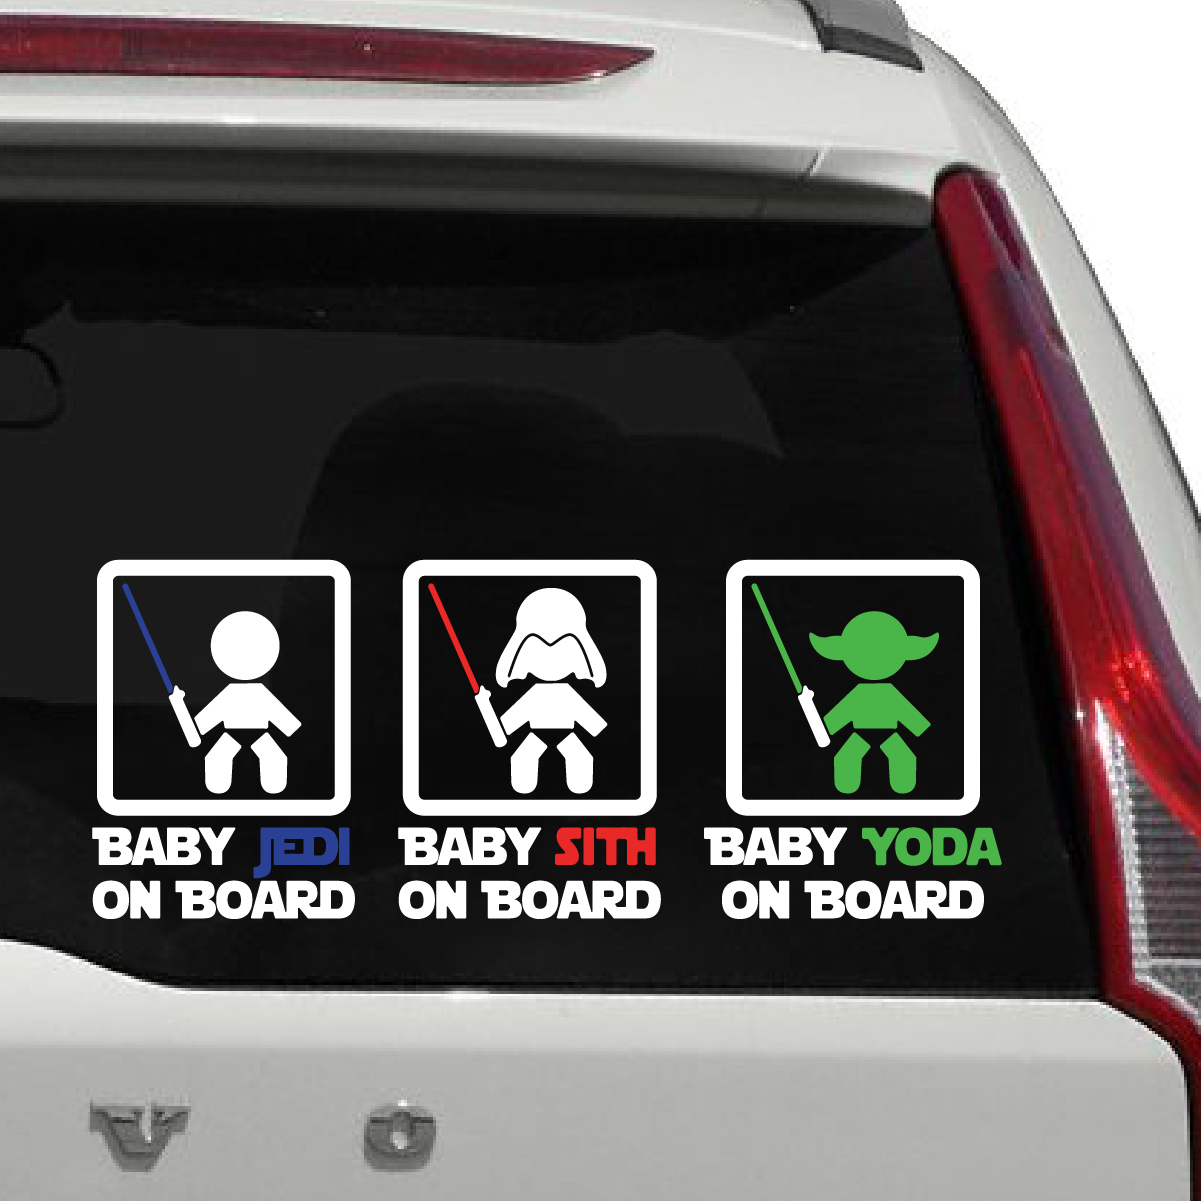 Baby Jedi On Board Sign Car Decal The Decal Guru - Vinyl decal stickers for carsbest car decals images on pinterest car decals family